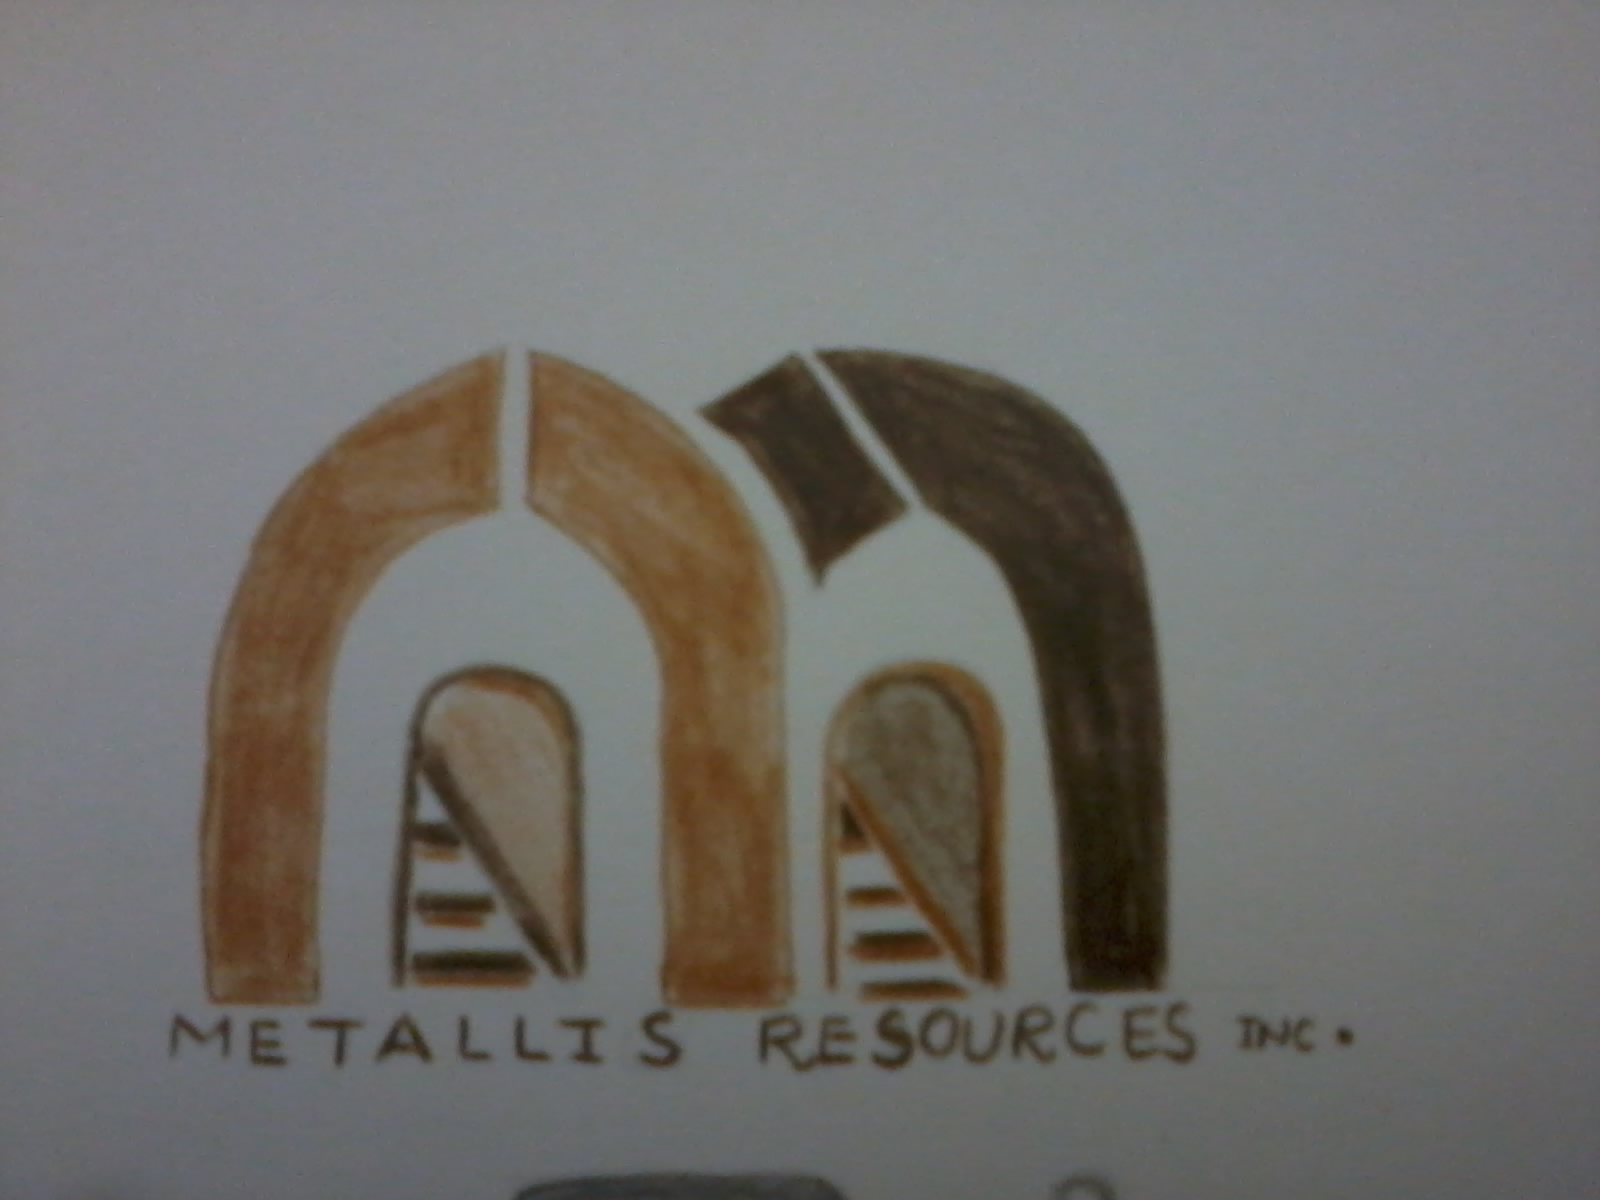 Logo Design by mediaproductionart - Entry No. 36 in the Logo Design Contest Metallis Resources Inc Logo Design.